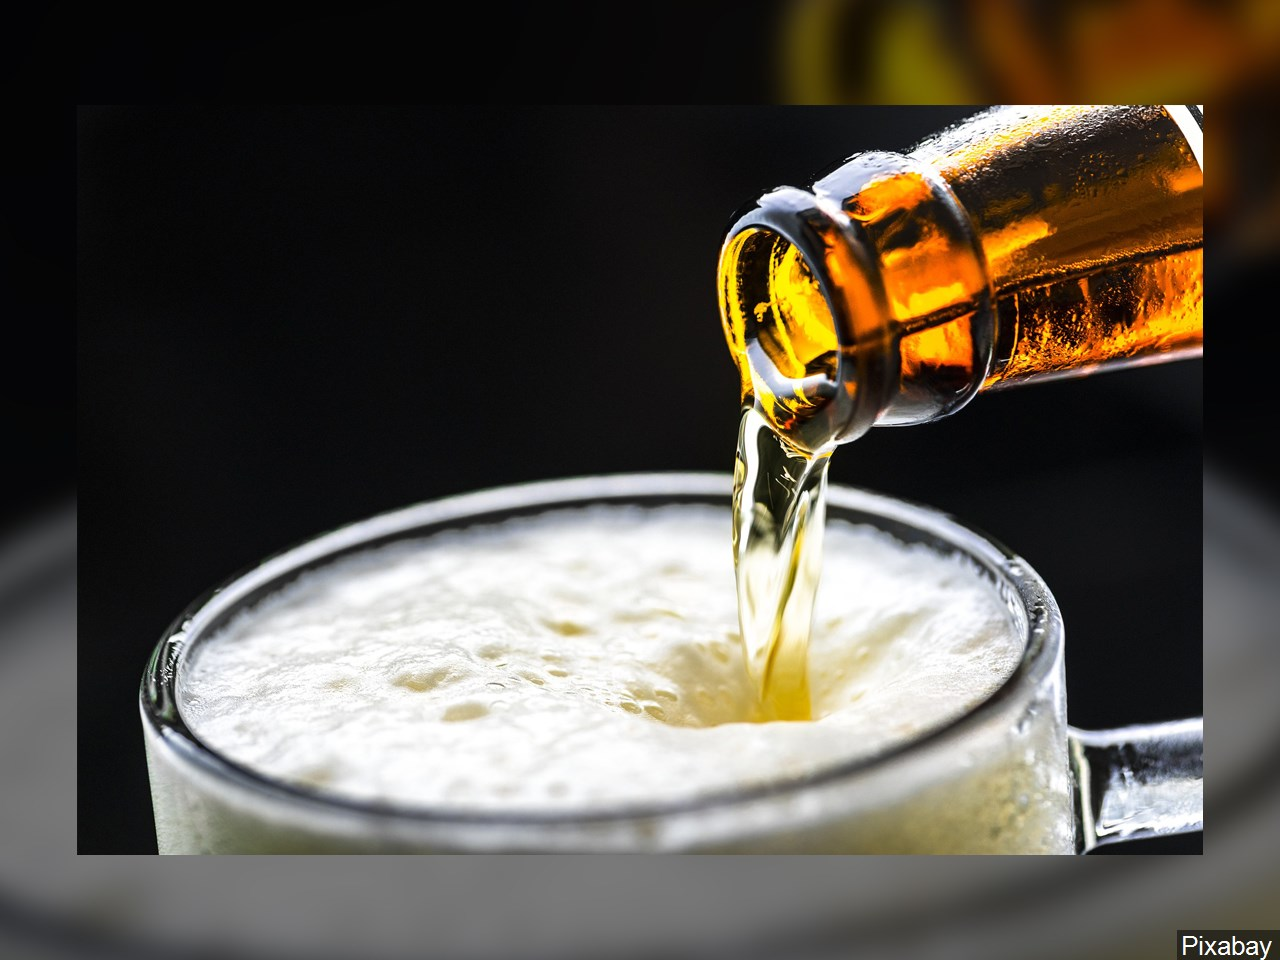 Fort Smith Nail Salon Offering Beer Pedicures thumbnail